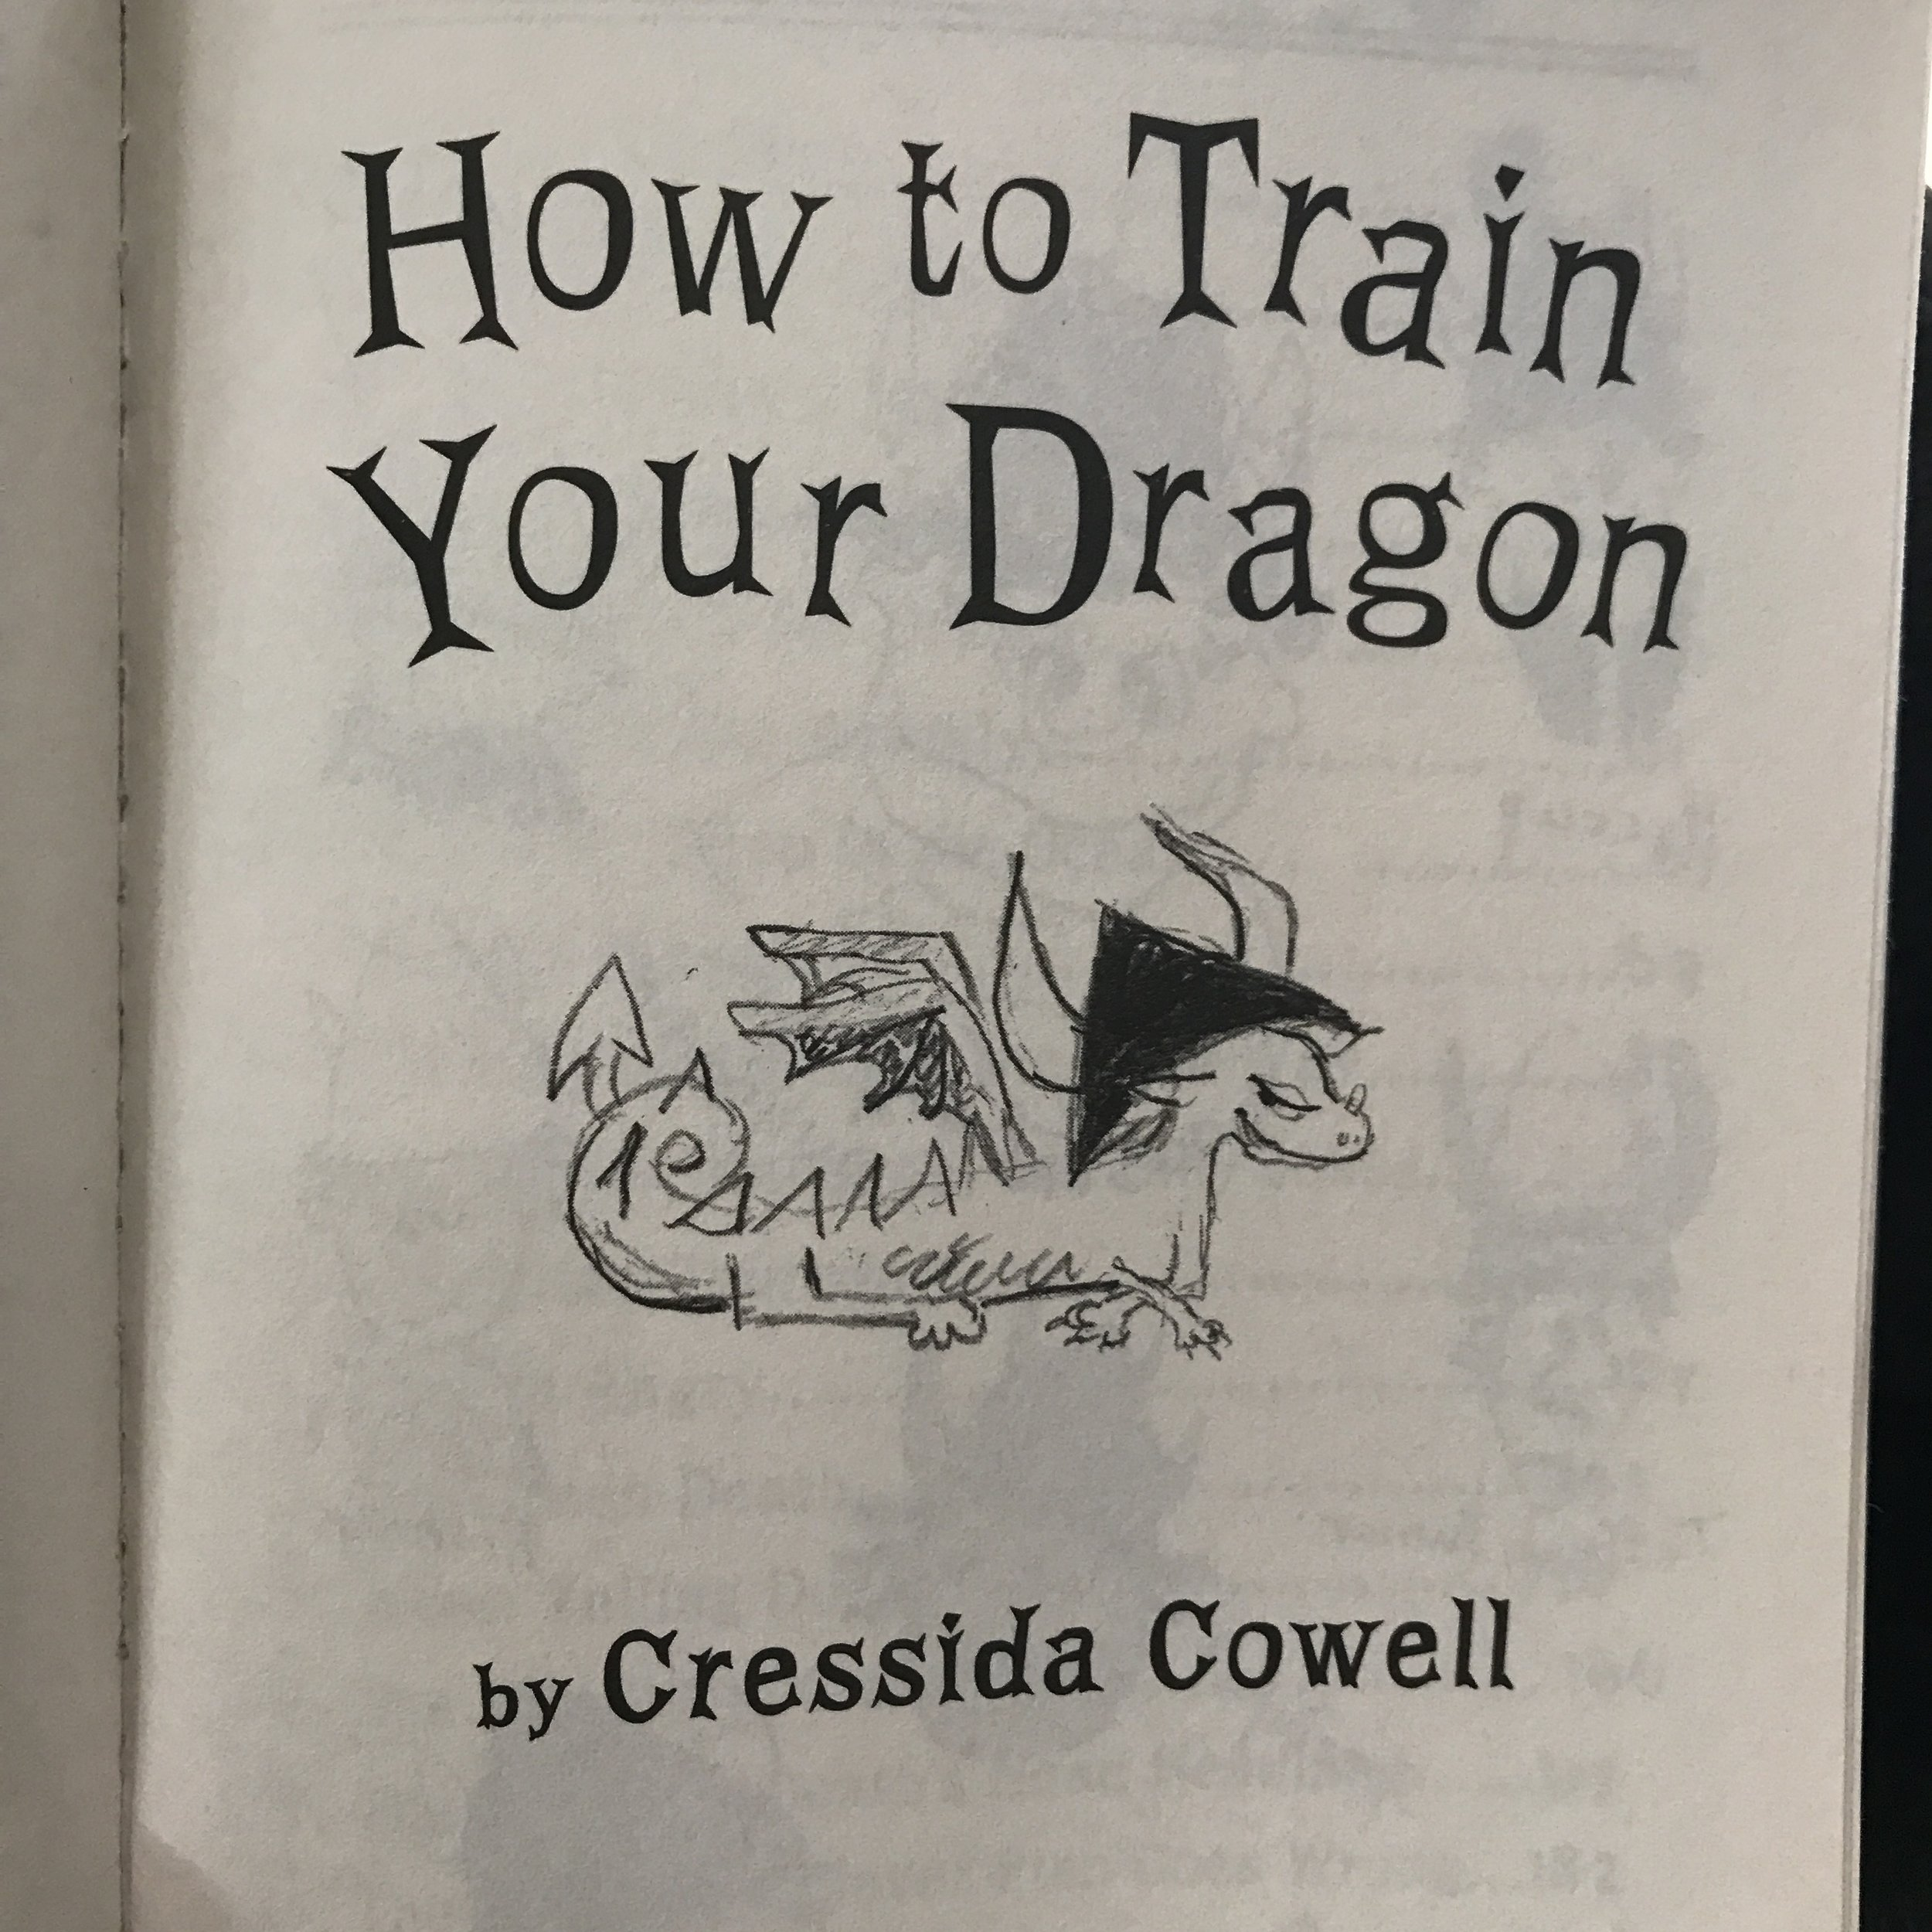 How to Train Your Dragon Excerpt1.JPG